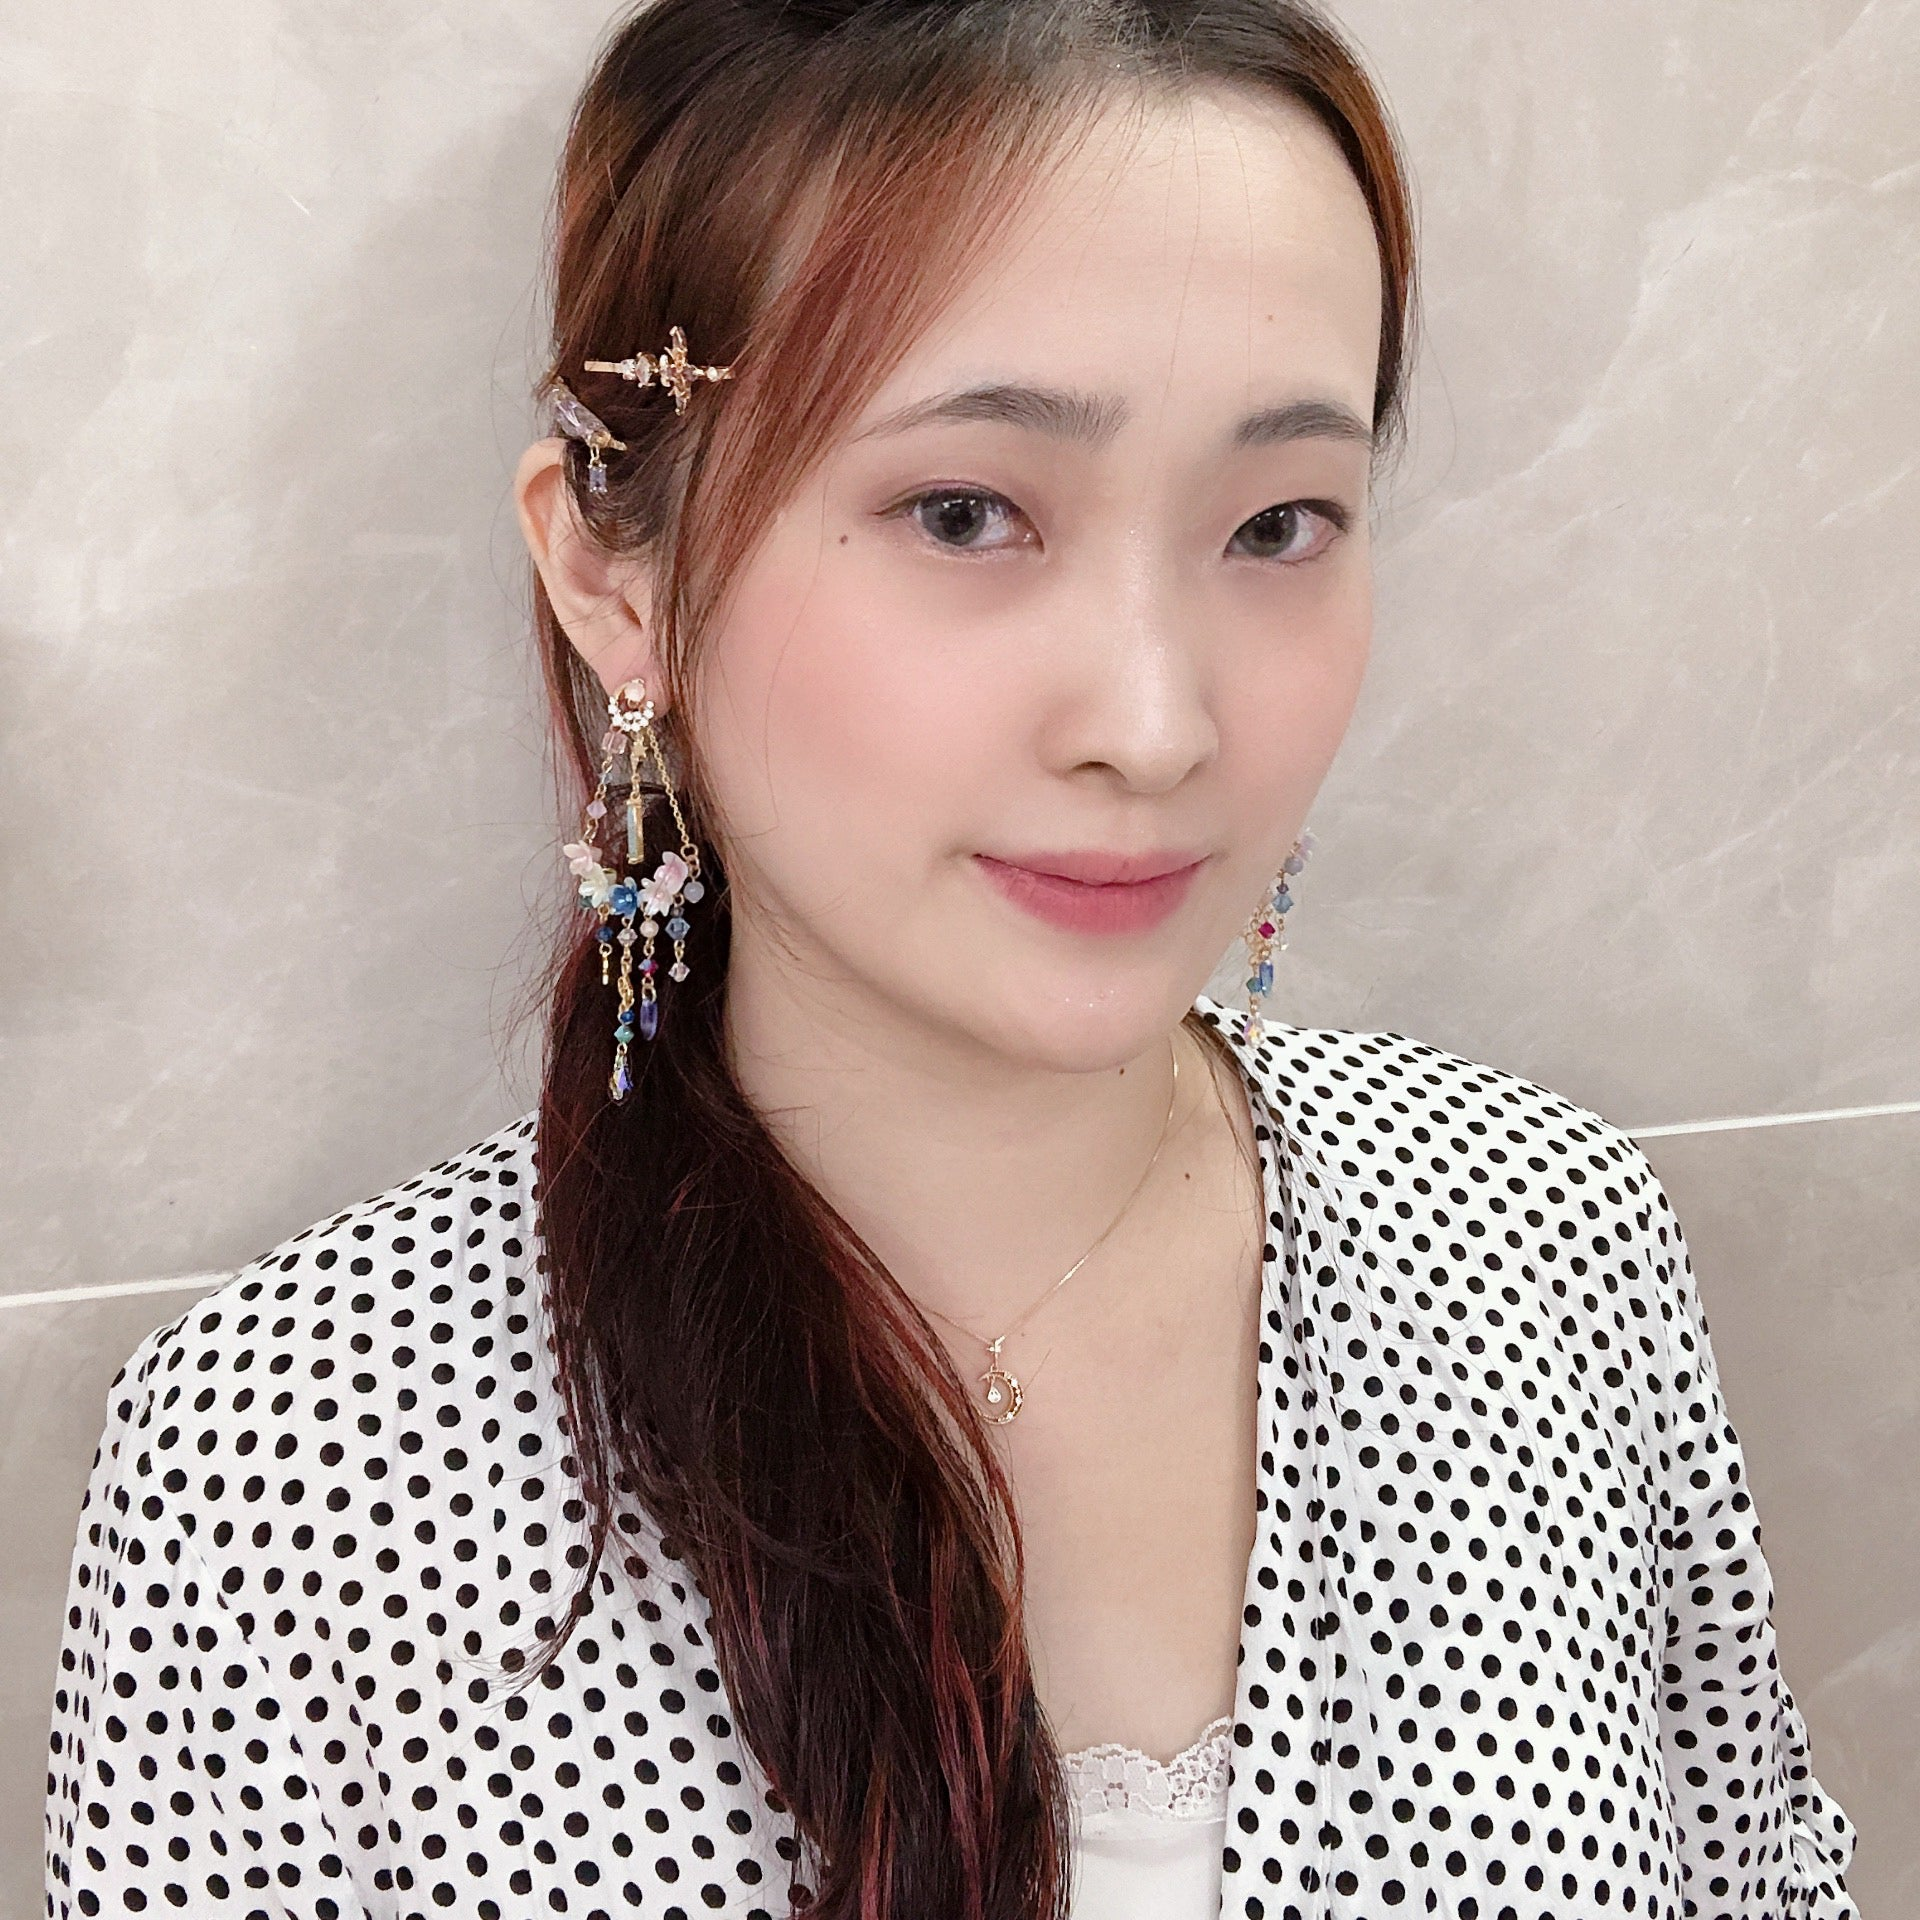 ⑧ 4-way Floral Swing Earrings (11 Designs)